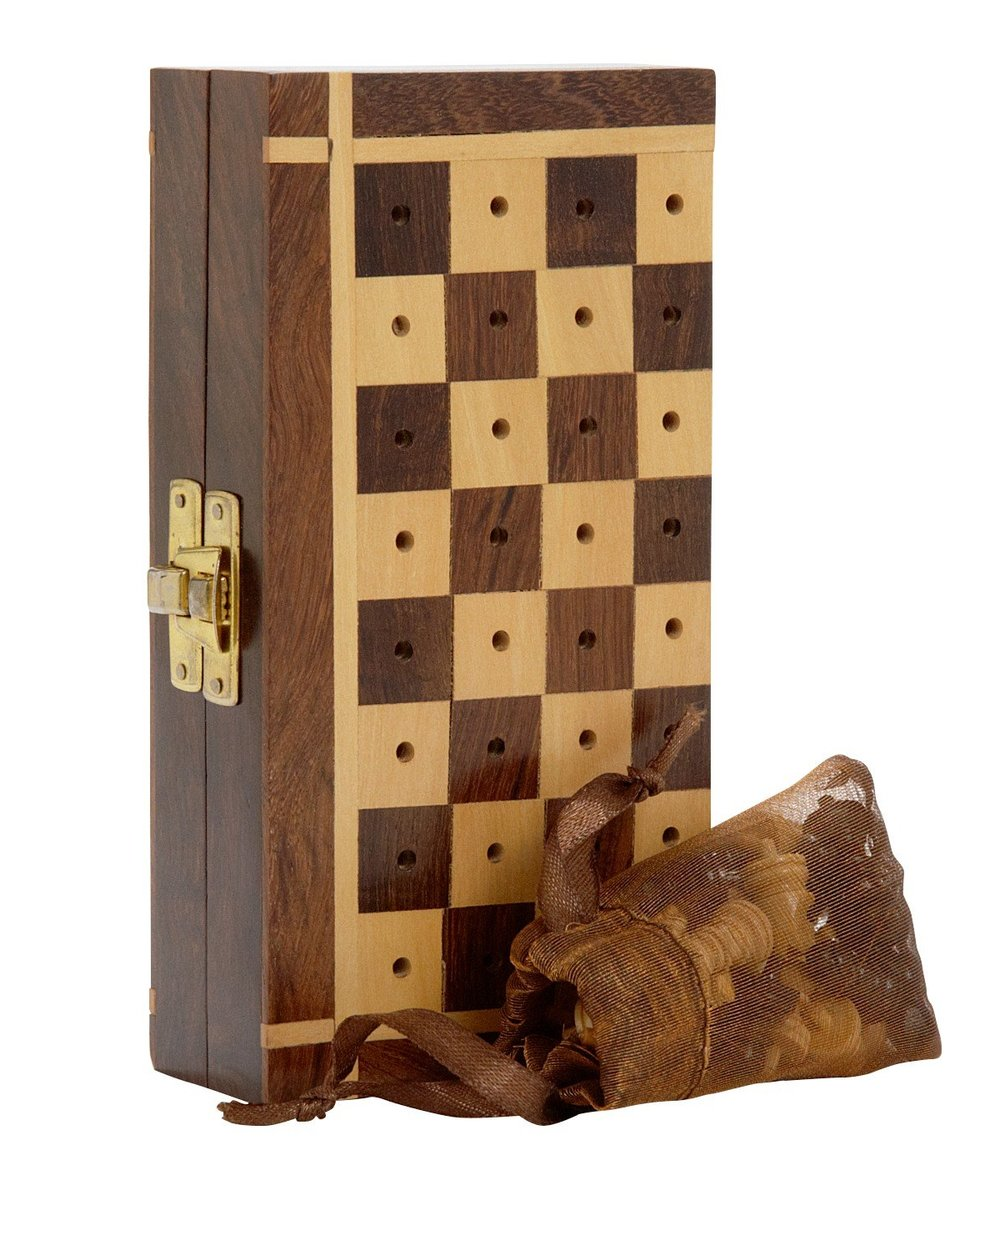 Traveling Chess Set - Ten Thousand Villages | $35 | Use 'STYLEMEFAIR25' for 25% off